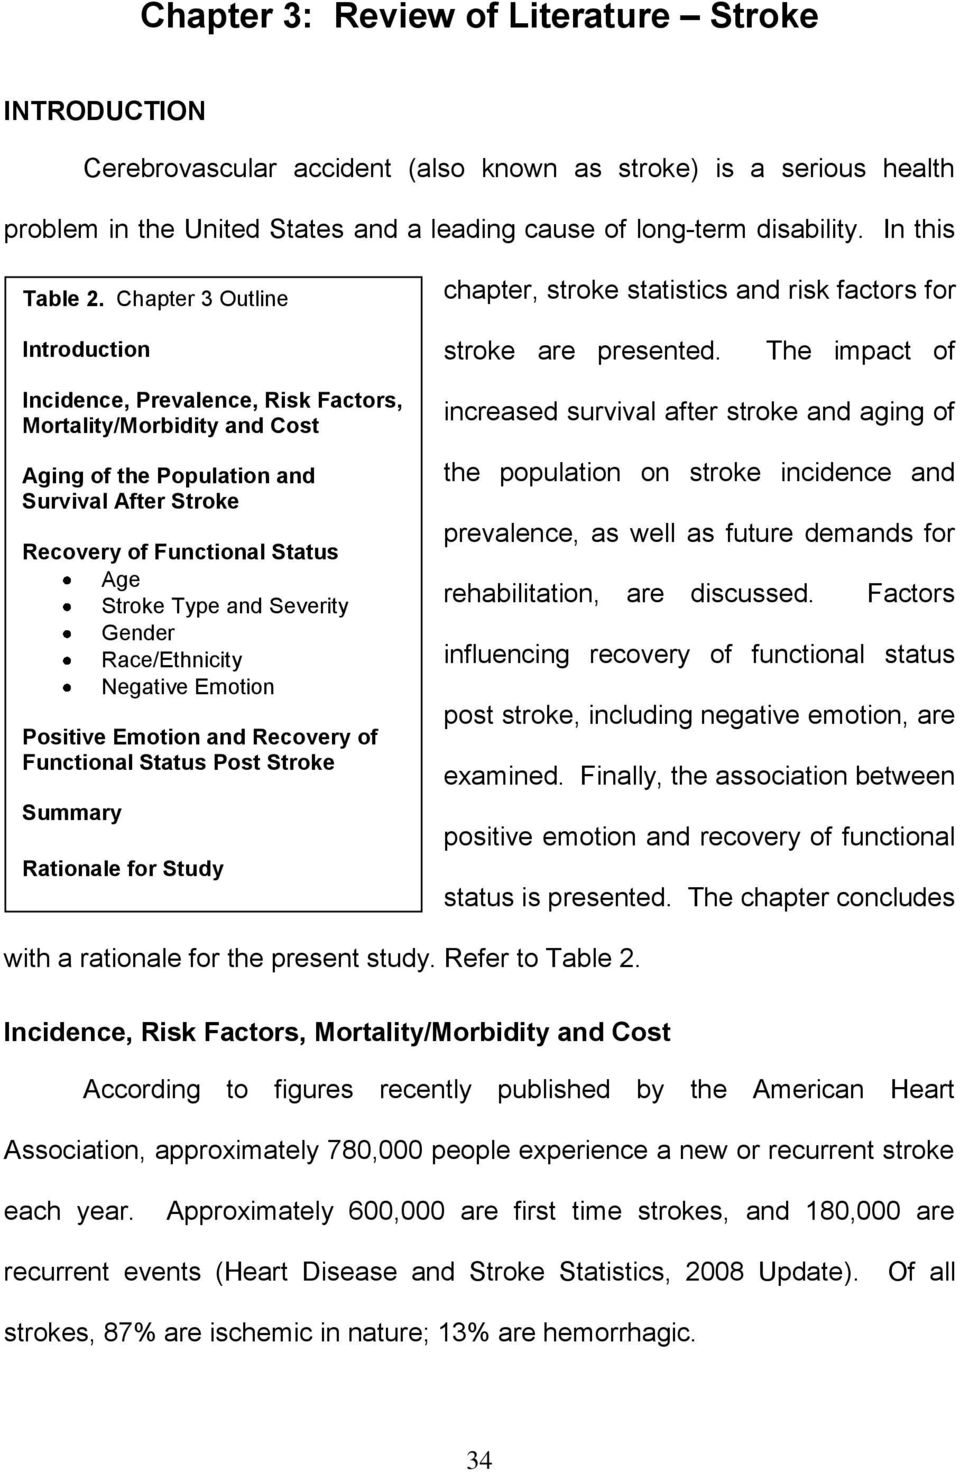 The impact of Incidence, Prevalence, Risk Factors, Mortality/Morbidity and Cost Aging of the Population and Survival After Stroke Recovery of Functional Status Age Stroke Type and Severity Gender